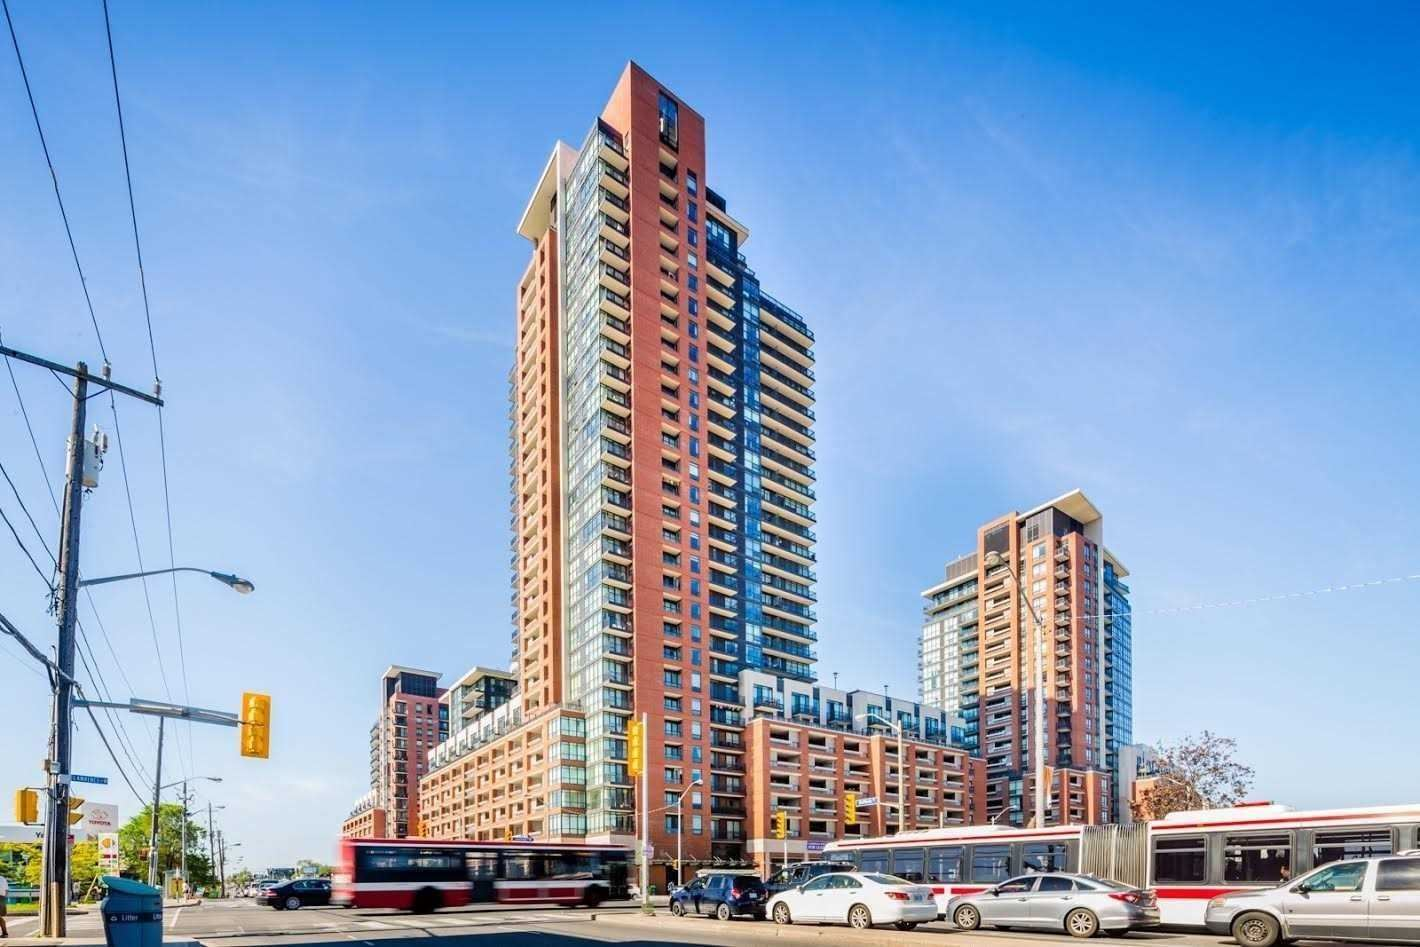 830 Lawrence Ave W #905, Toronto, ON M6A1C3 - MLS#: W5378546